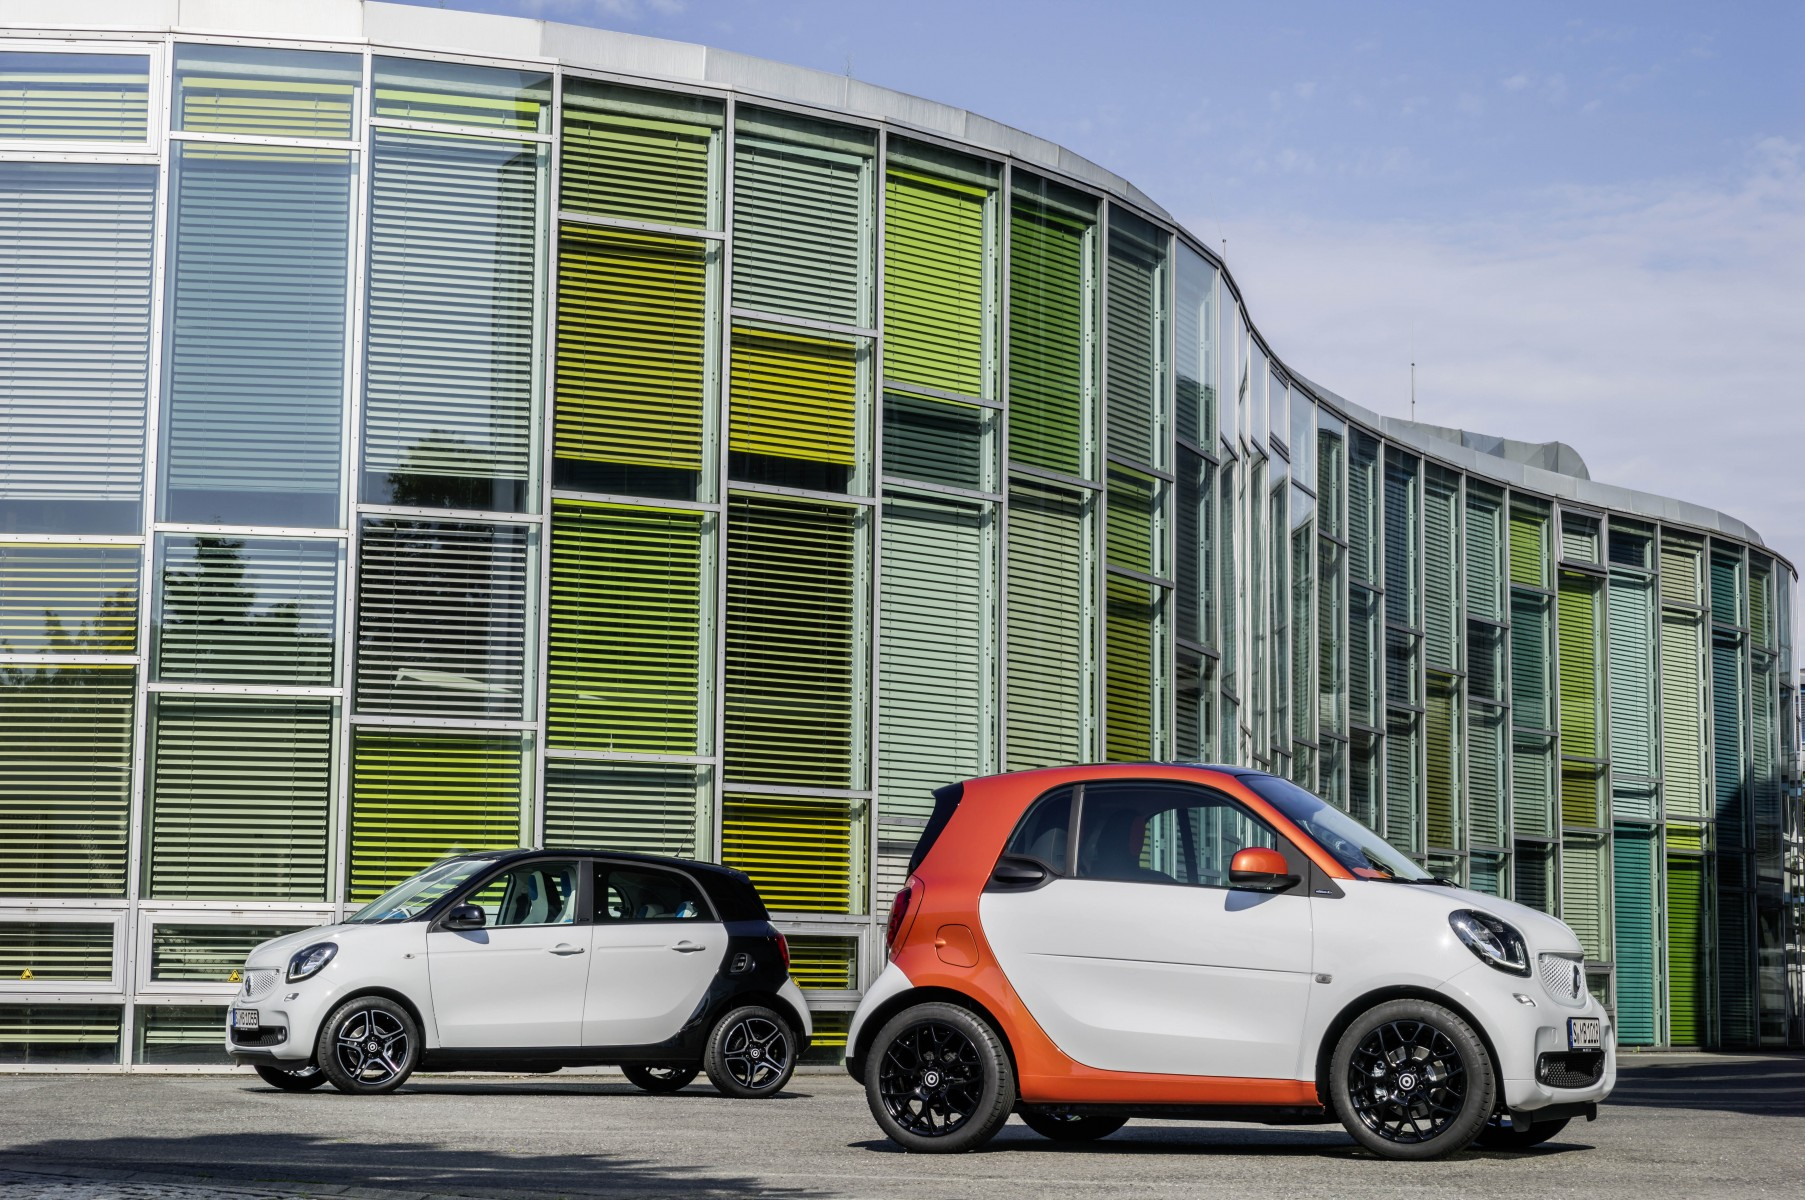 The new smart fortwo 2014: Body panels in white, tridion safety cell in lava orange (metallic). The new smart forfour 2014: Body in white, tridion safety cell in black